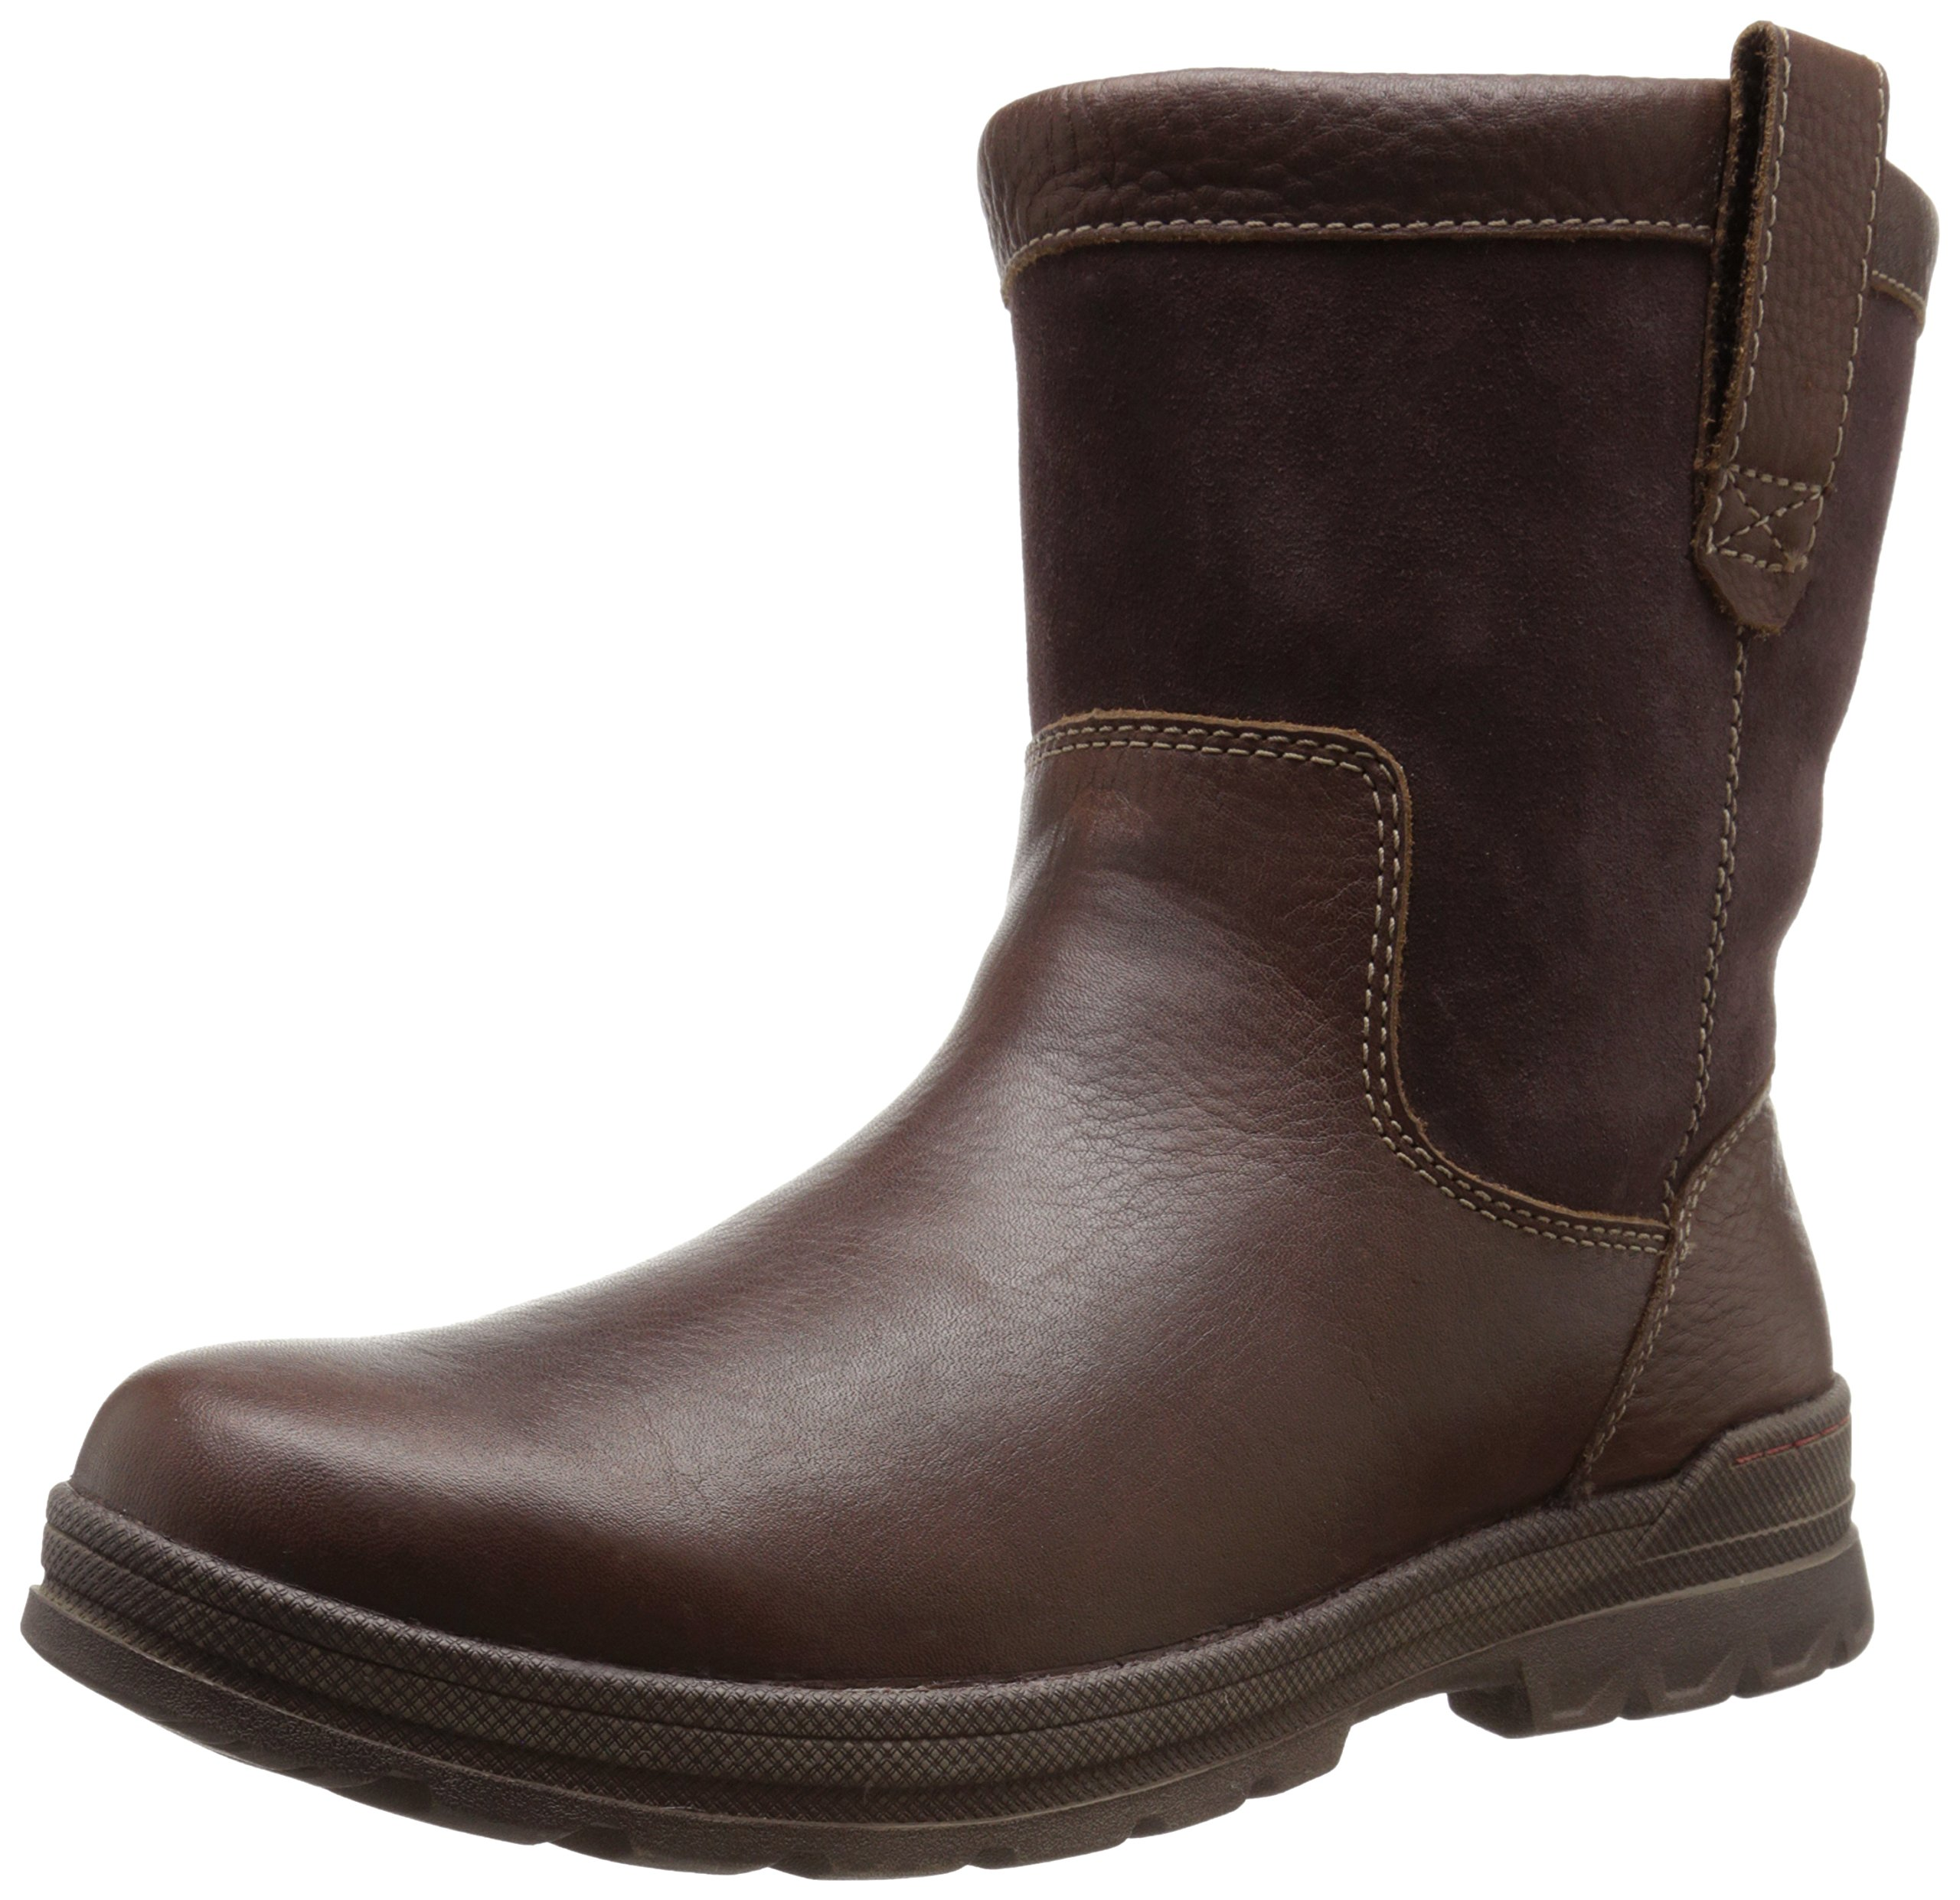 CLARKS Men's Ryerson Peak Winter Boot, Brown Tumble, 9 M US by CLARKS